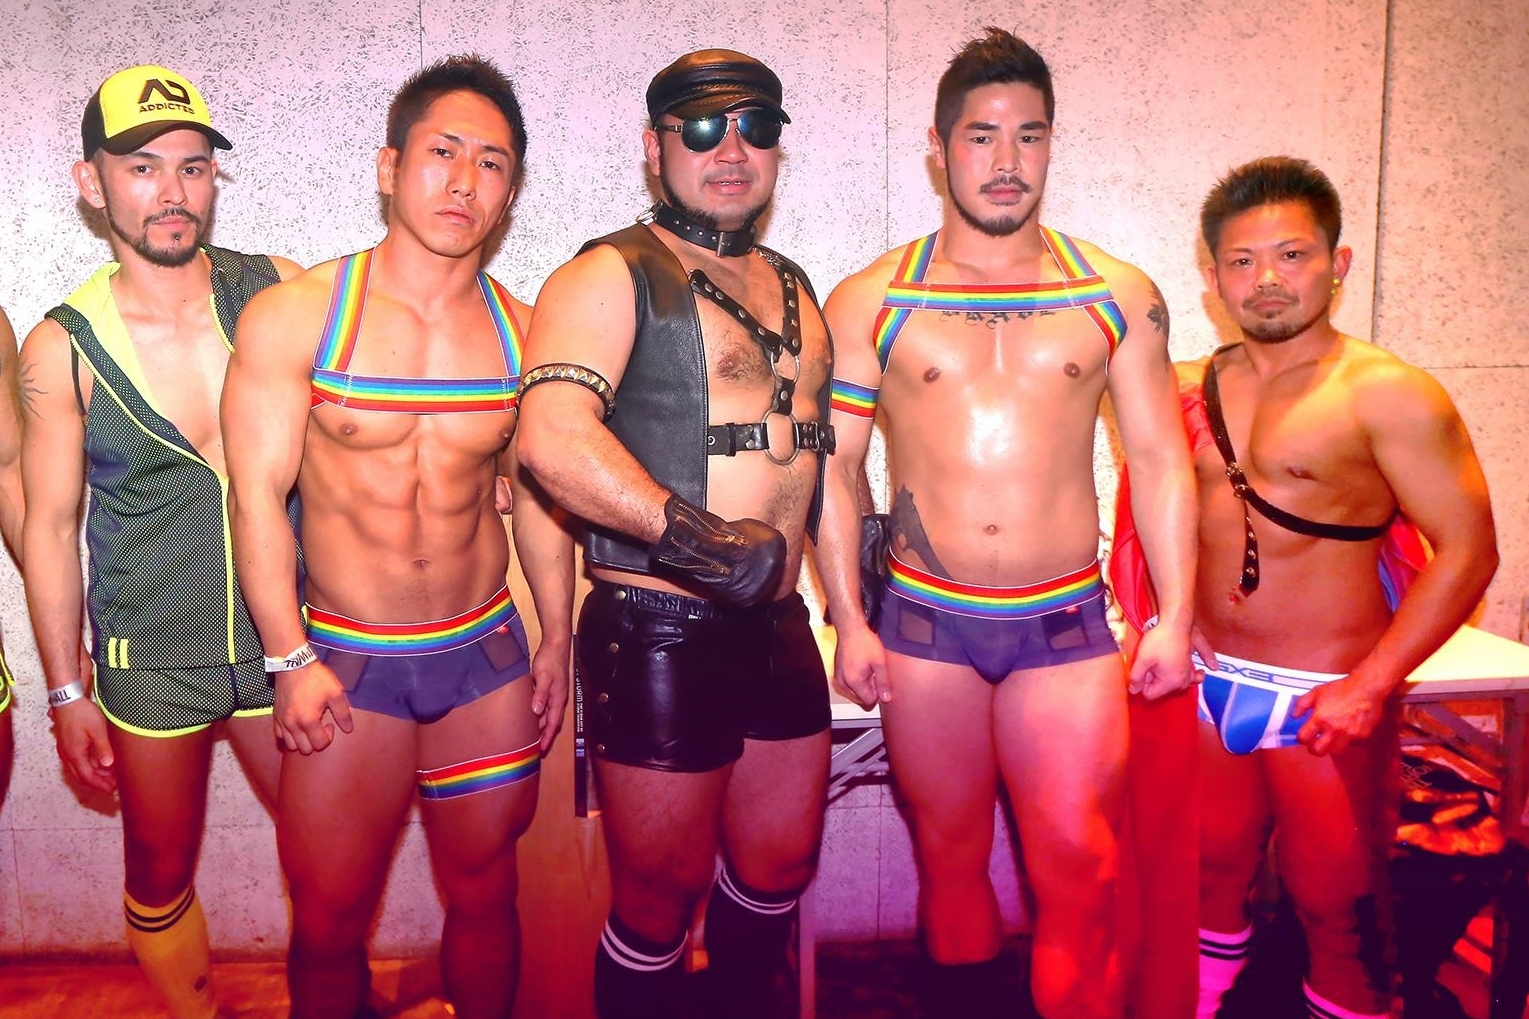 GOGO TOKYO - DIRECTOR: Tomohito GoshozonoPRODUCER: Hisanori Tamura, Mai TakachiyoSTORY: Hisanori TamuraLANGUAGE: Japanese & PortugueseA feature documentary film about 6 gogo boys, who are considered as stars in the Tokyo LGBTQ+ community, revealing not only their everyday life as a person, but also finding out the reasons of their life choices.